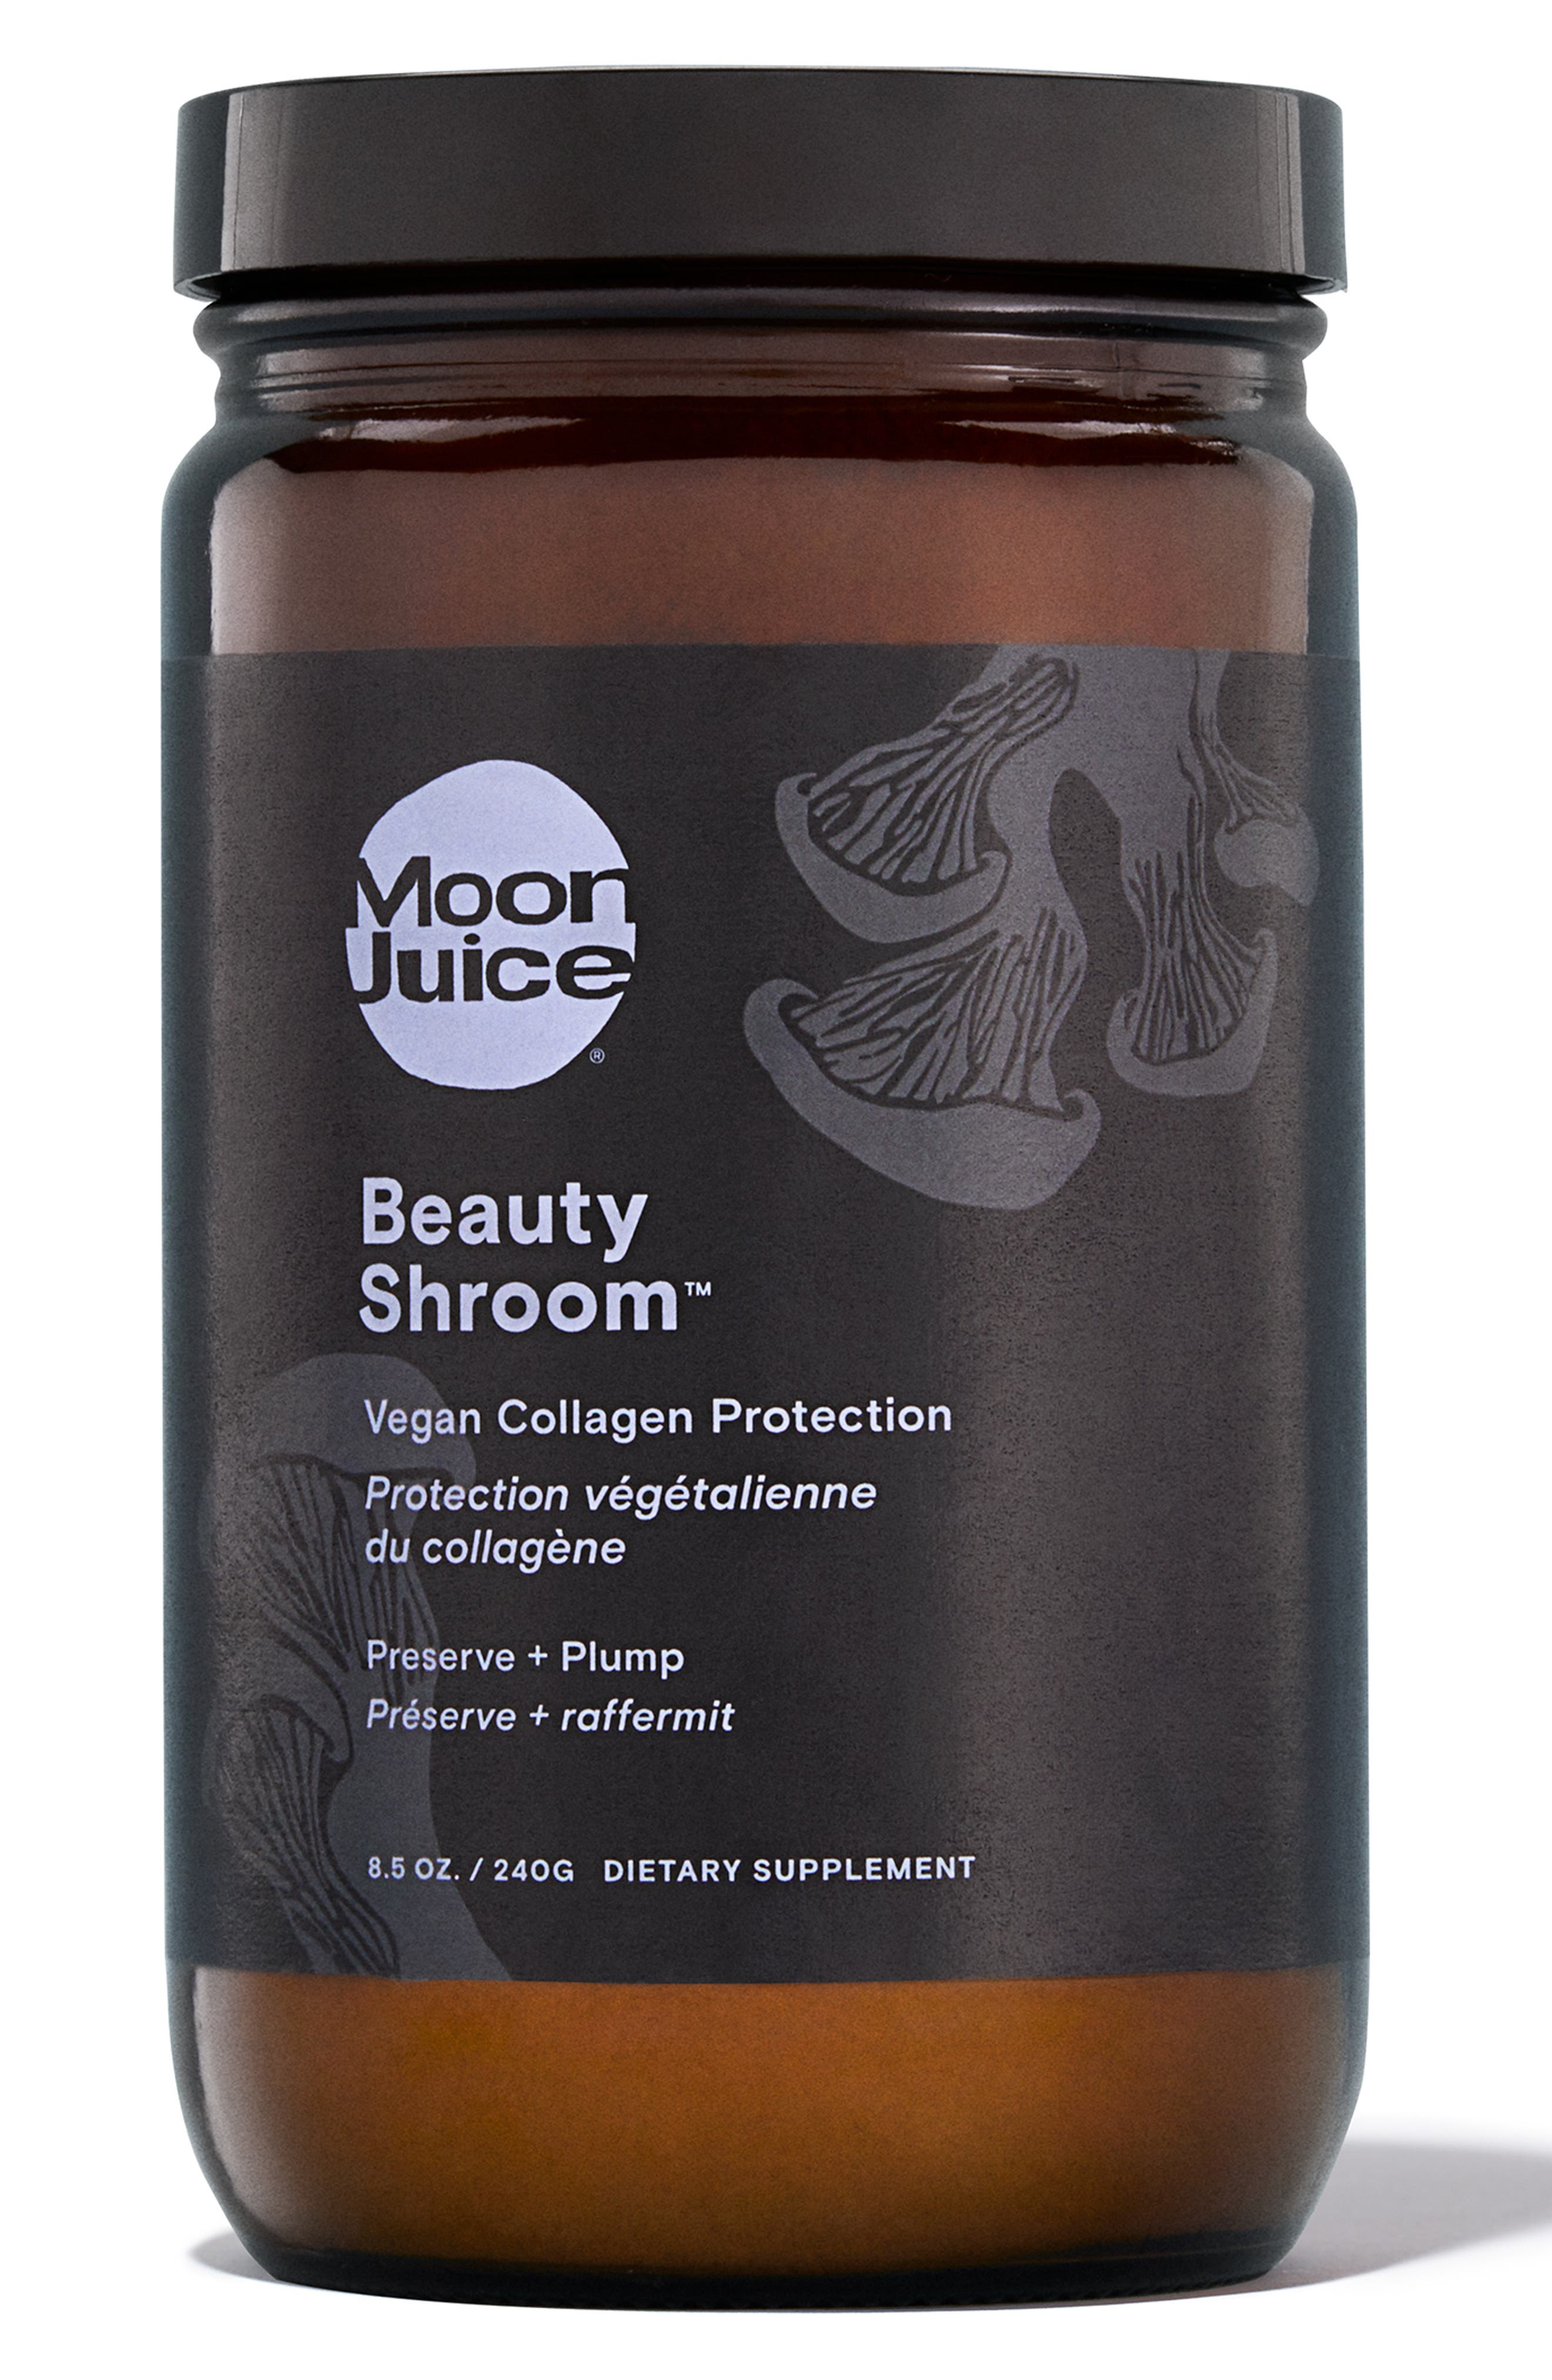 Beauty Shroom Vegan Collagen Protection Dietary Supplement,                             Main thumbnail 1, color,                             NO COLOR